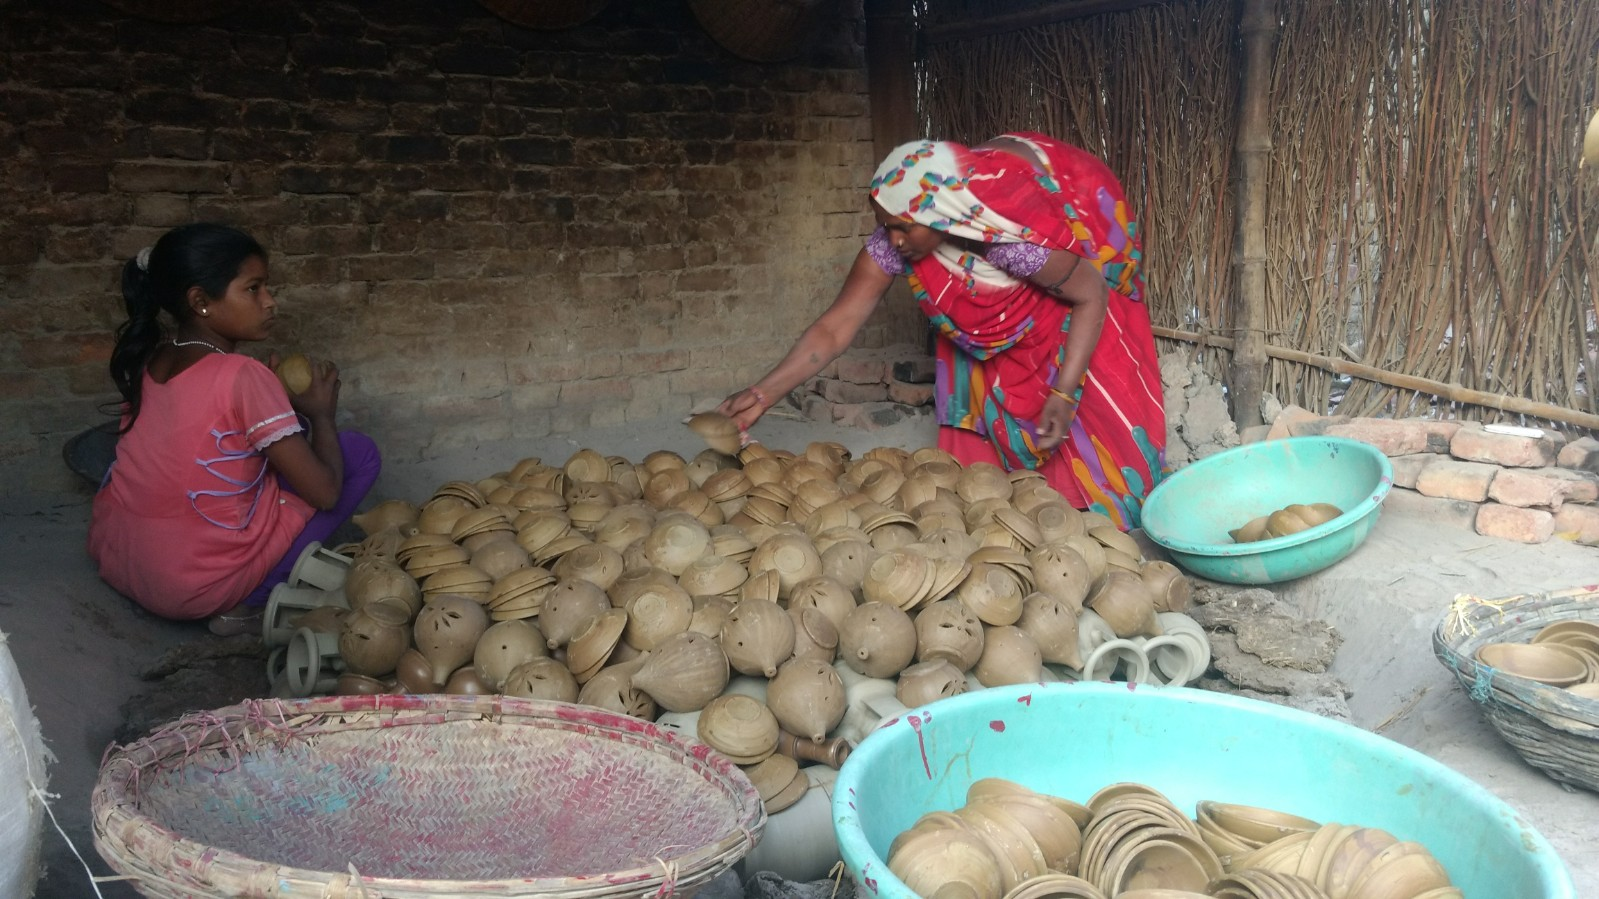 Tikamgarh's Potters Go Jobless As People With LPG Connections Switch to Shiny Pots